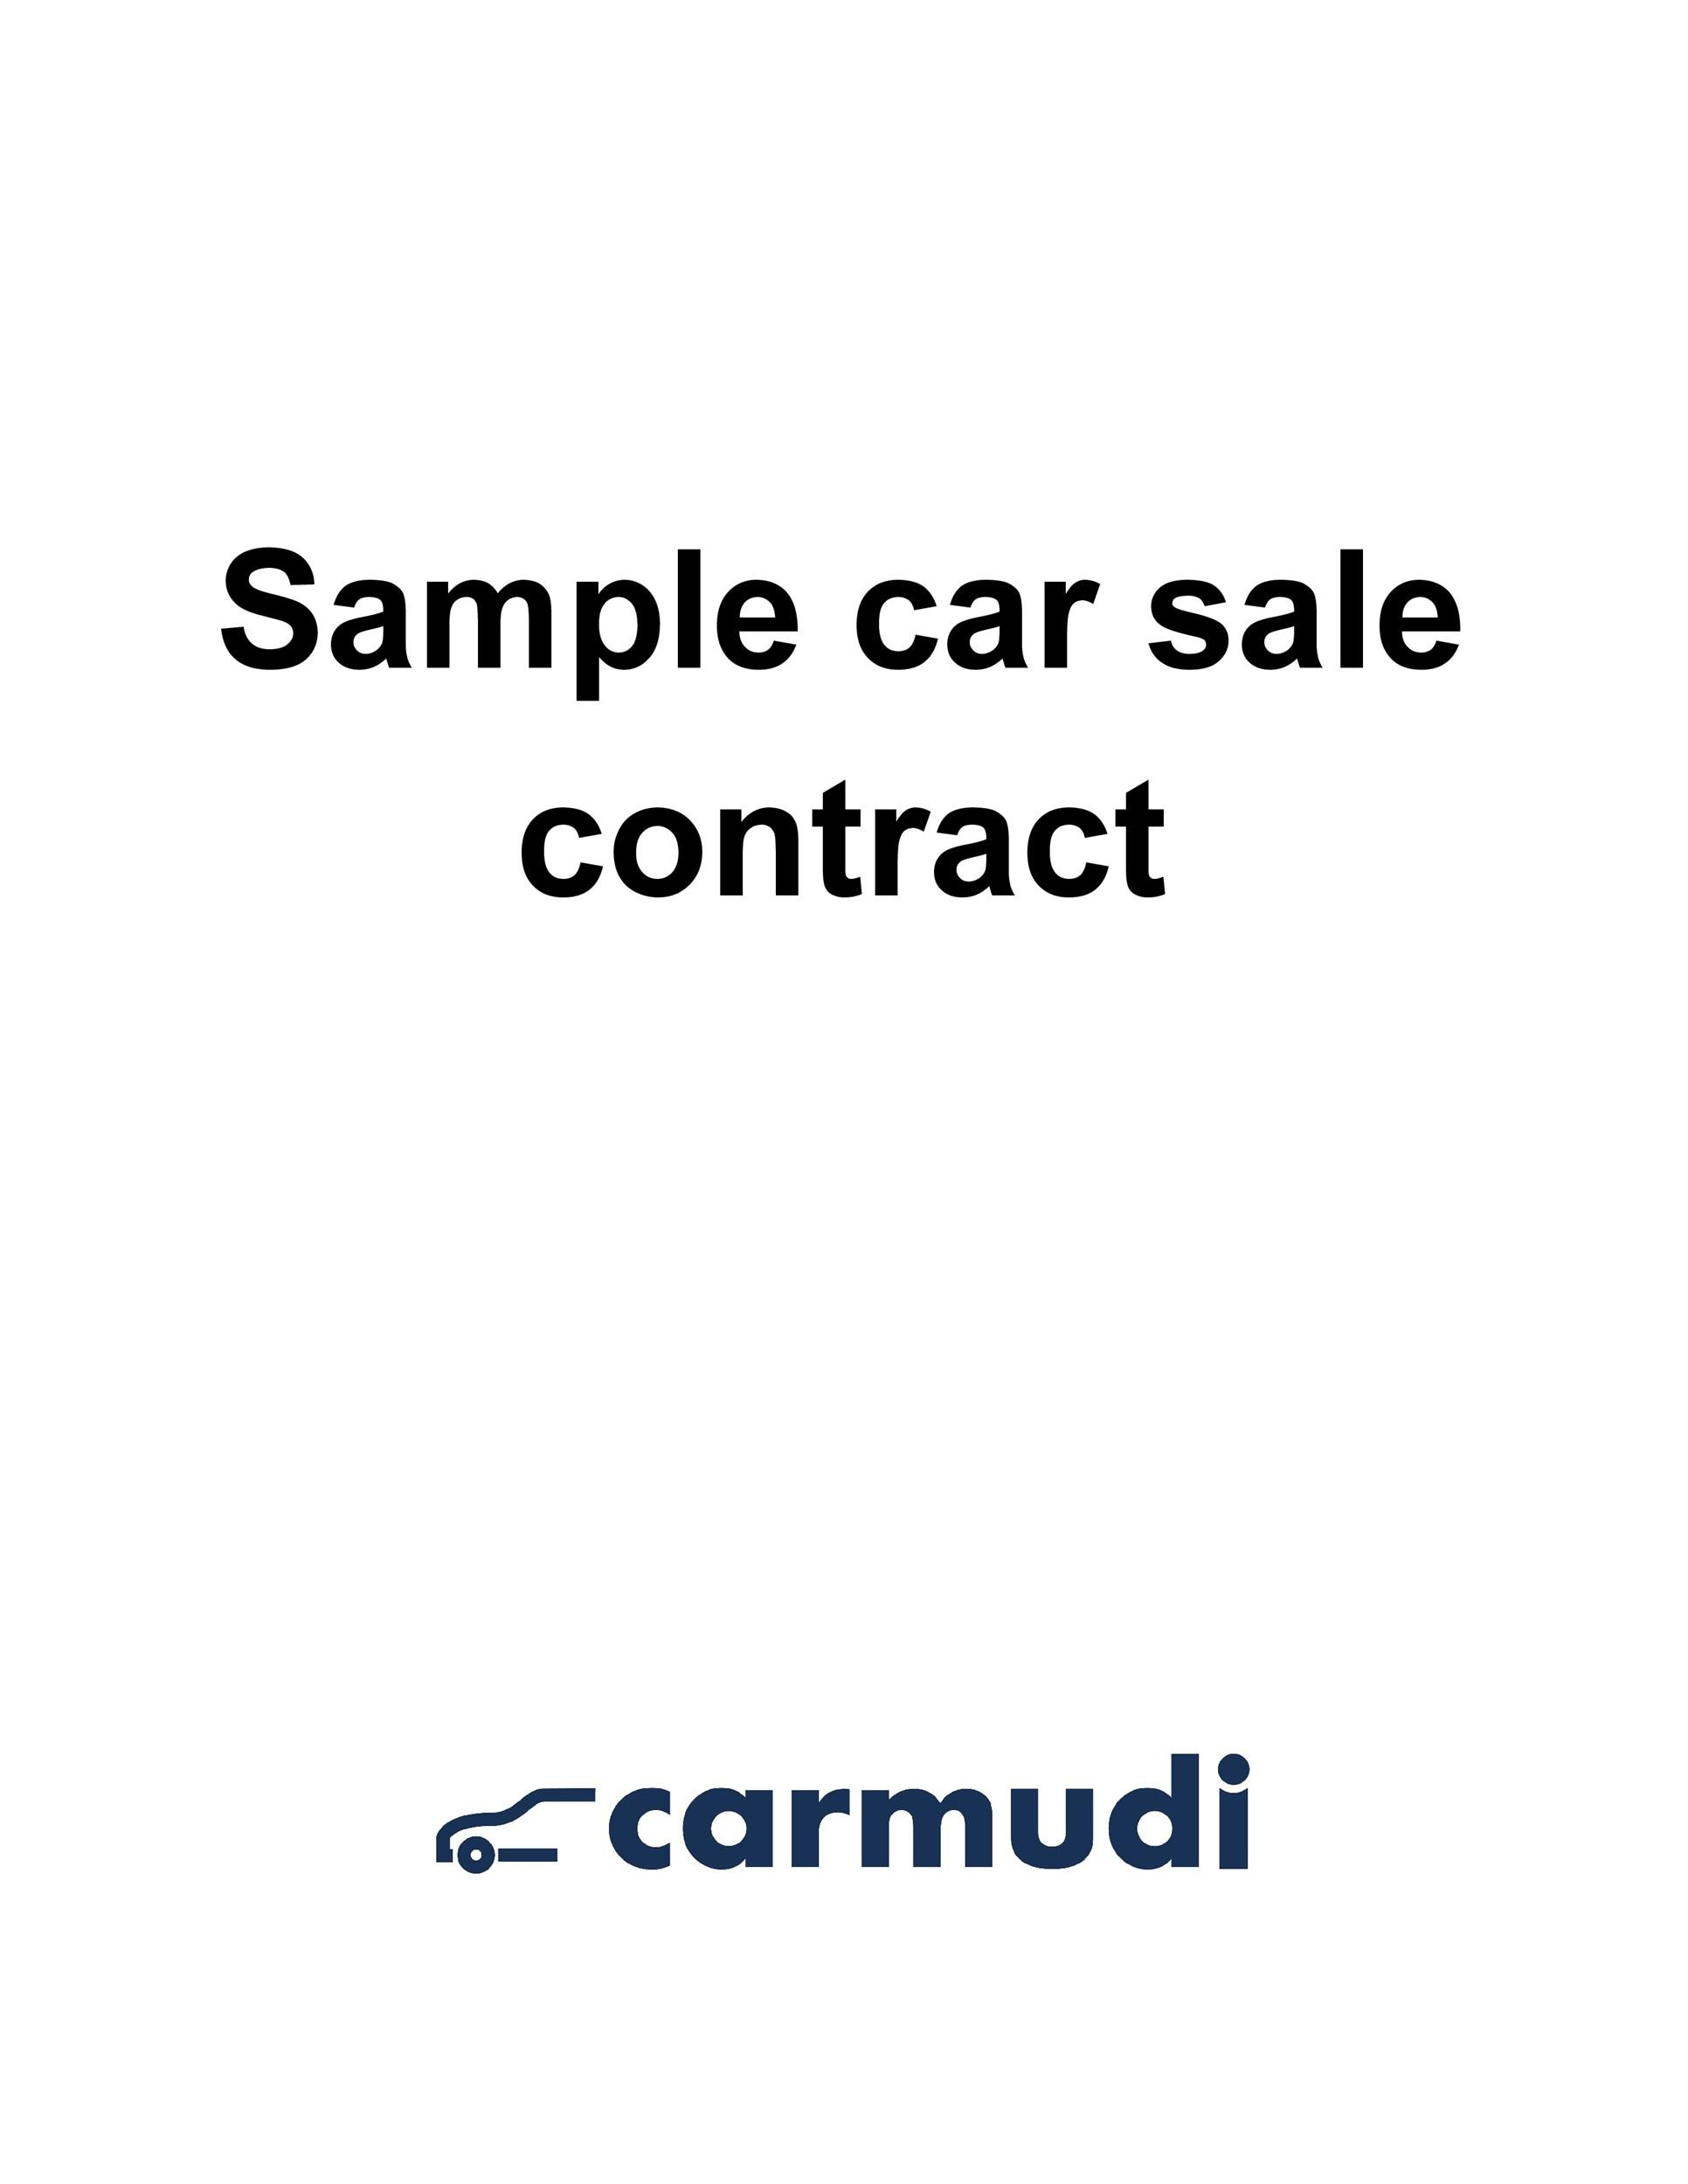 private car sale contract payments 42 Printable Vehicle Purchase Agreement Templates - Template Lab